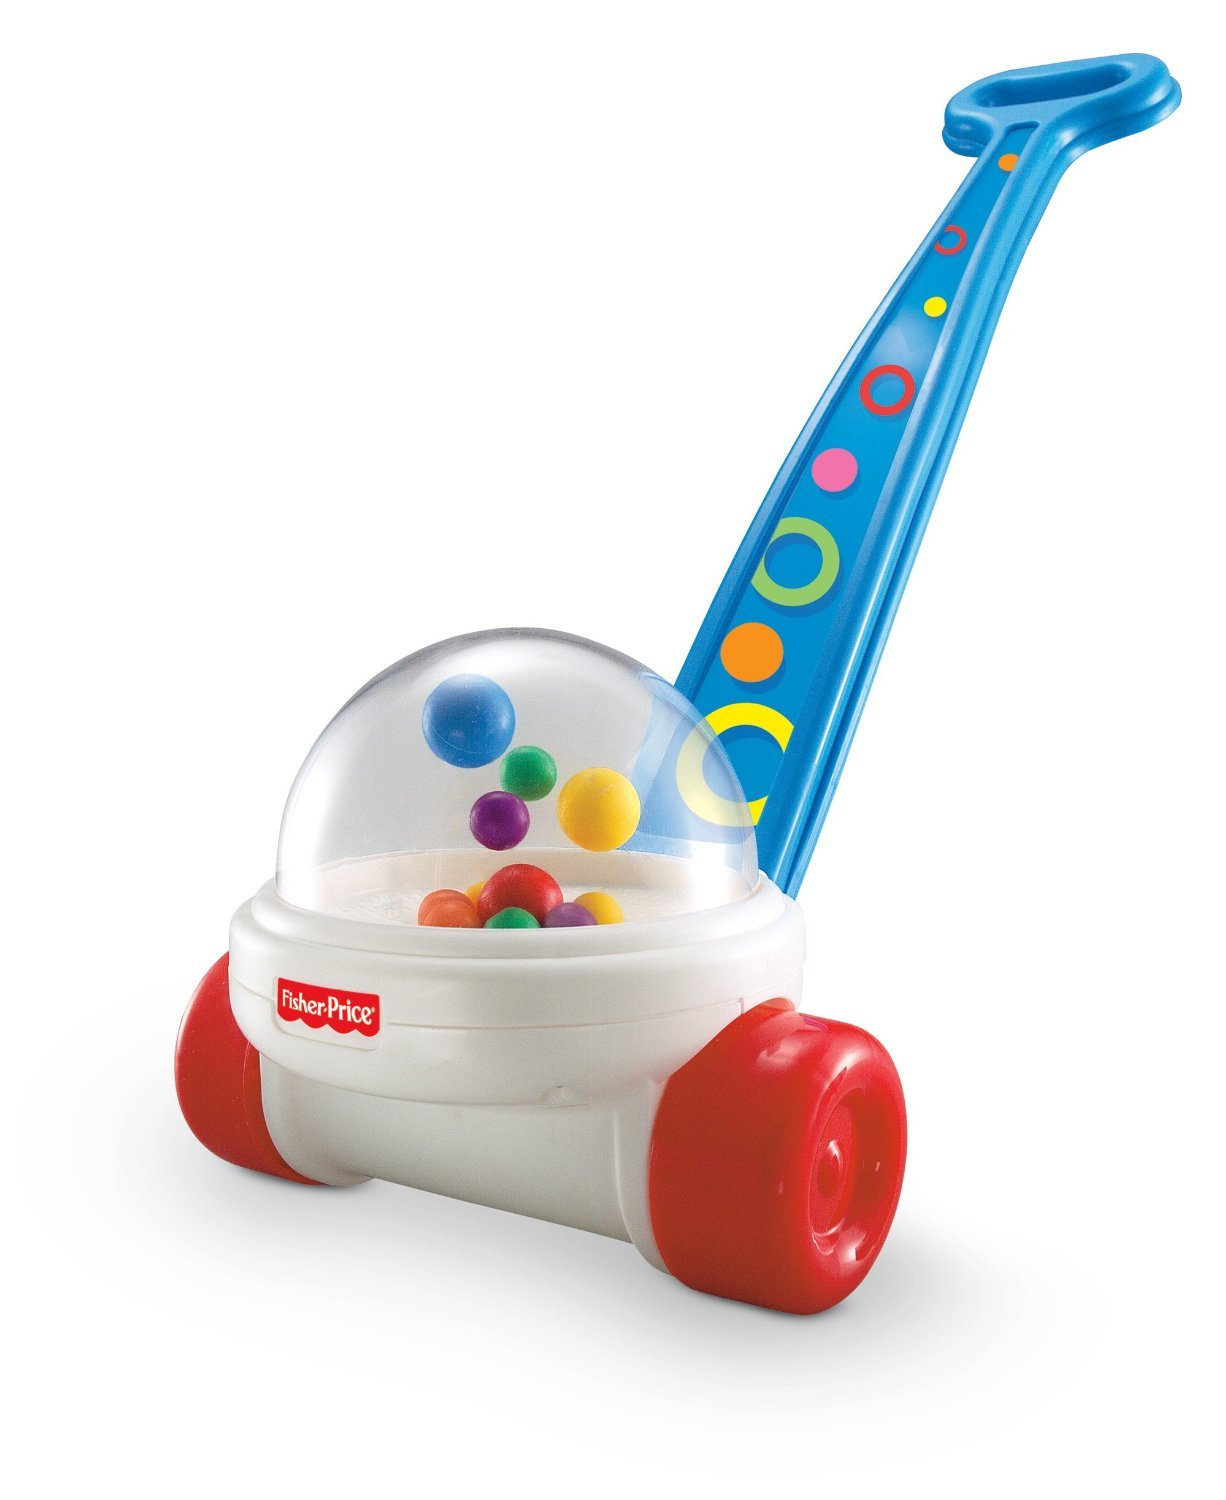 Top 15 Best Walking Toys for 1 Year Olds Mothers Should Consider 8